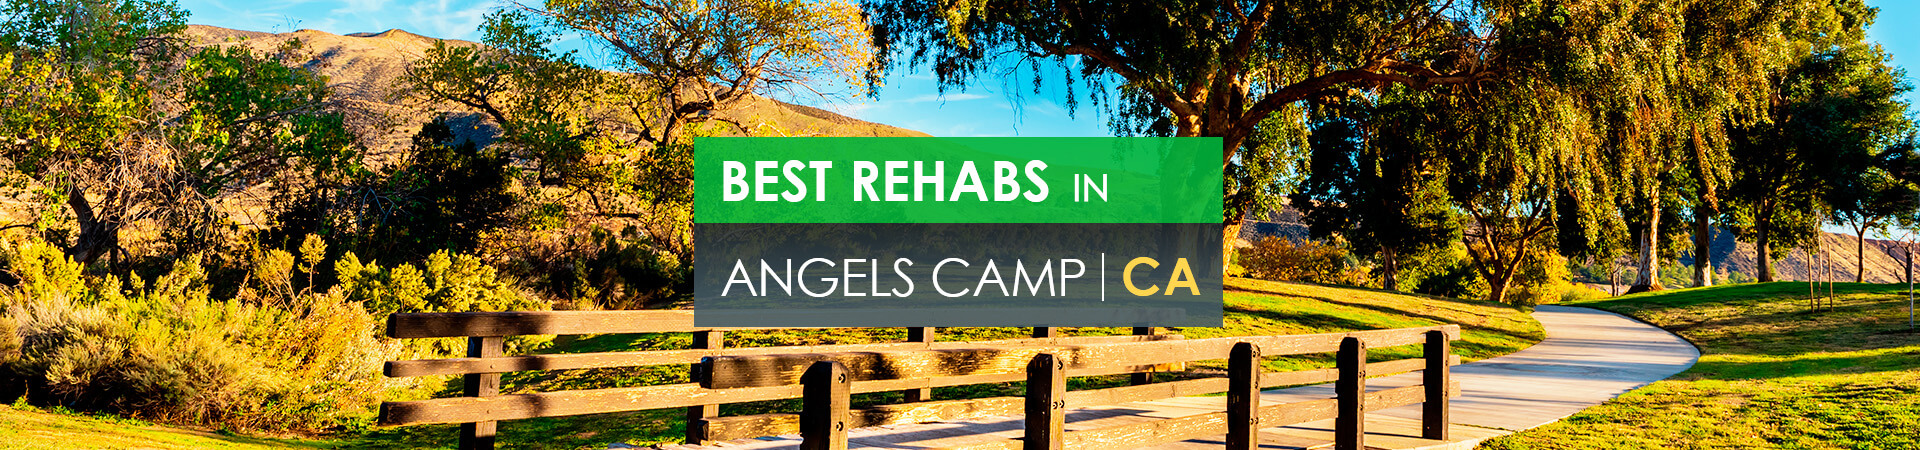 Best rehabs in Angels Camp, CA